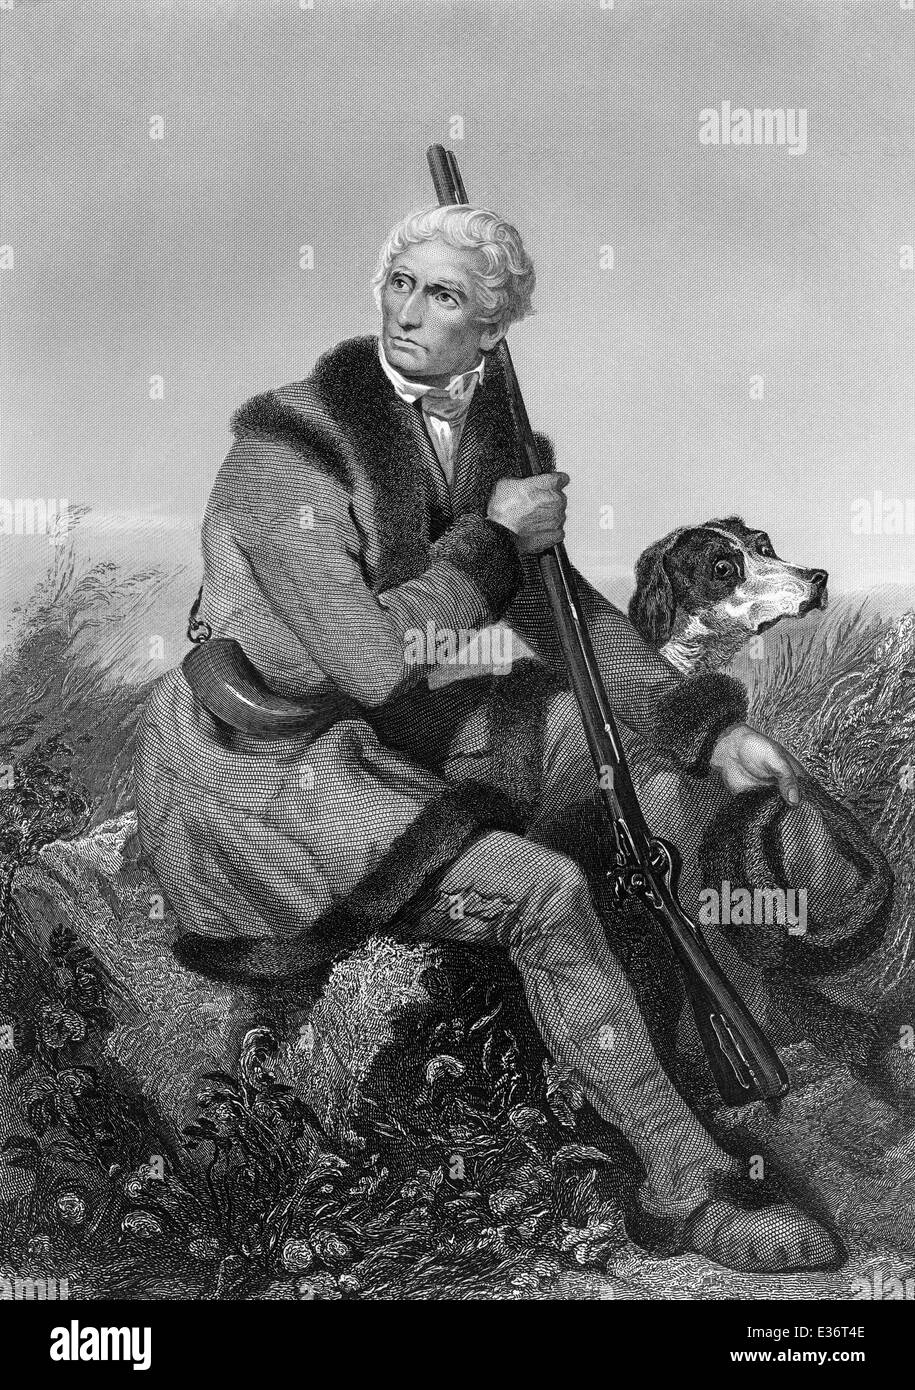 portrait of Daniel Boone, 1734 - 1820, an American pioneer and hunter, Stock Photo